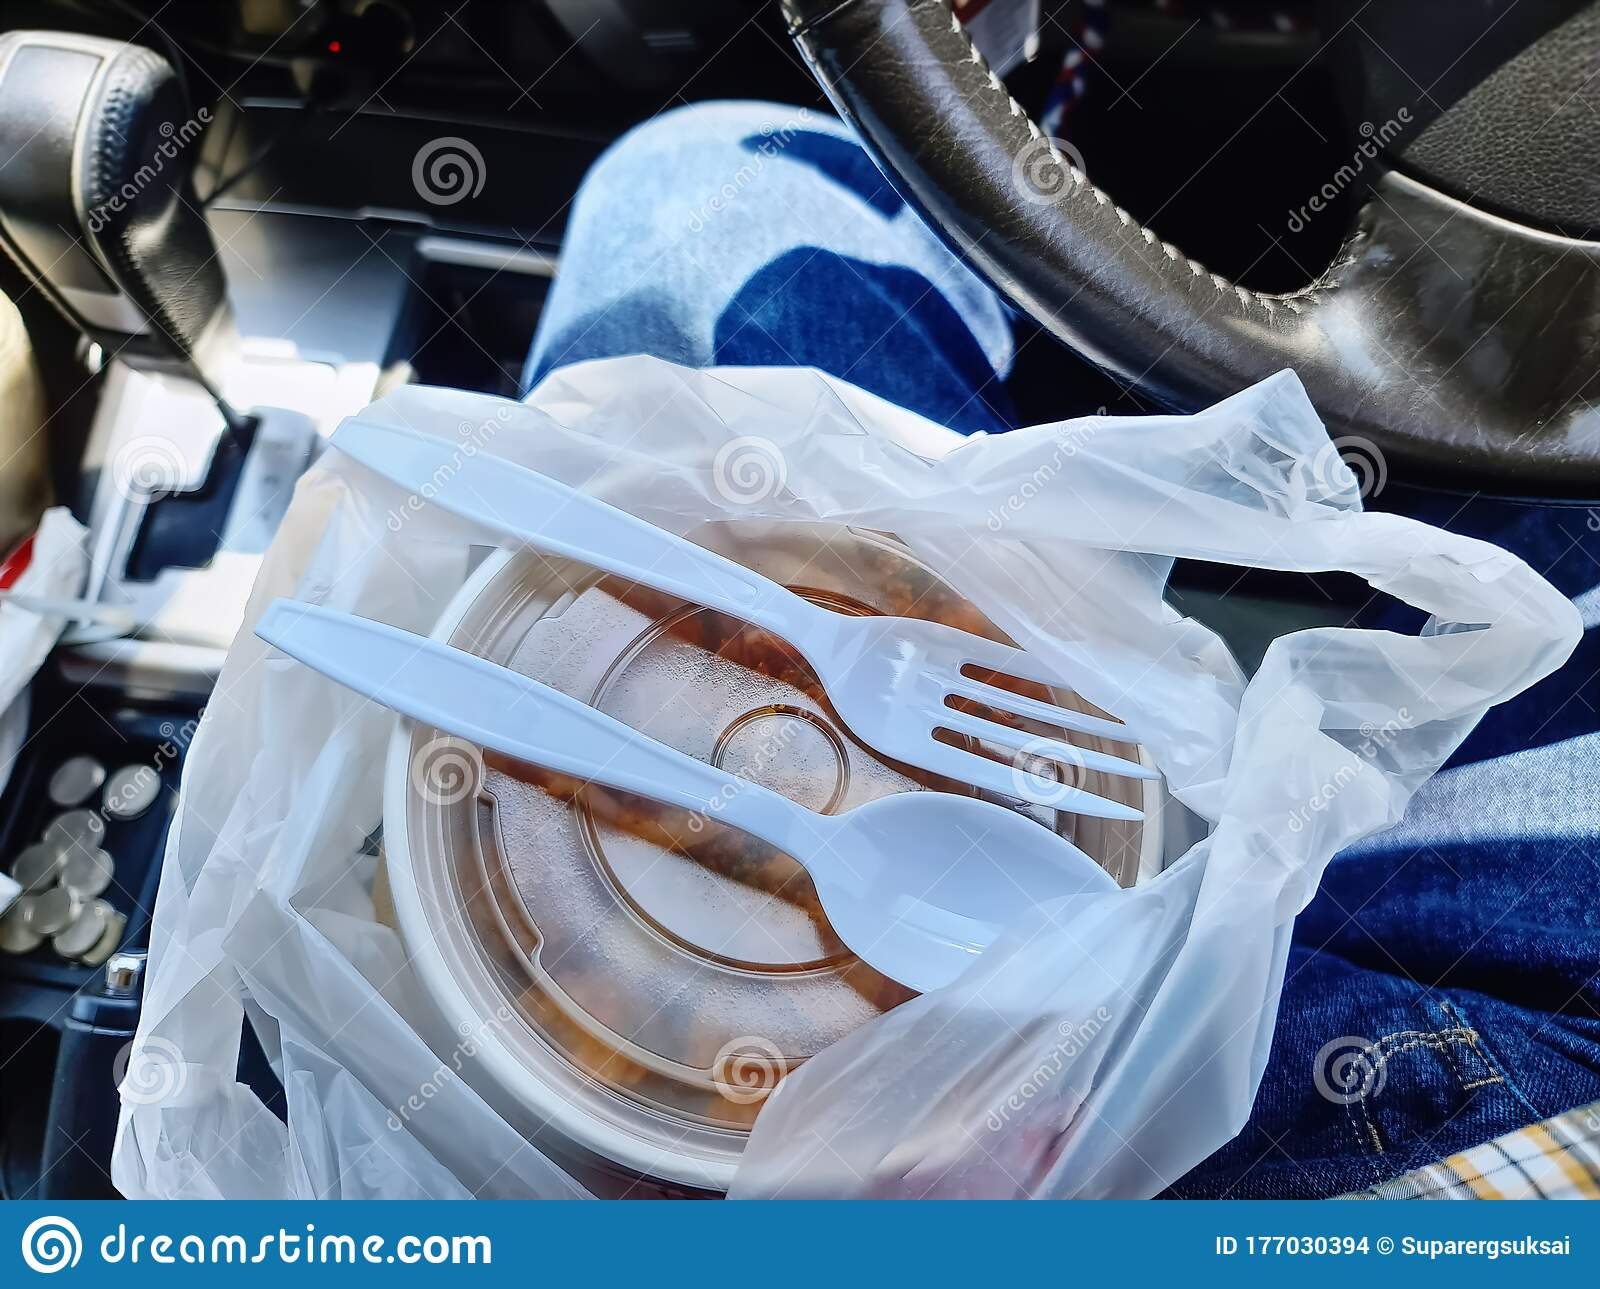 1,472 Car Lid Photos - Free & Royalty-Free Stock Photos from Dreamstime